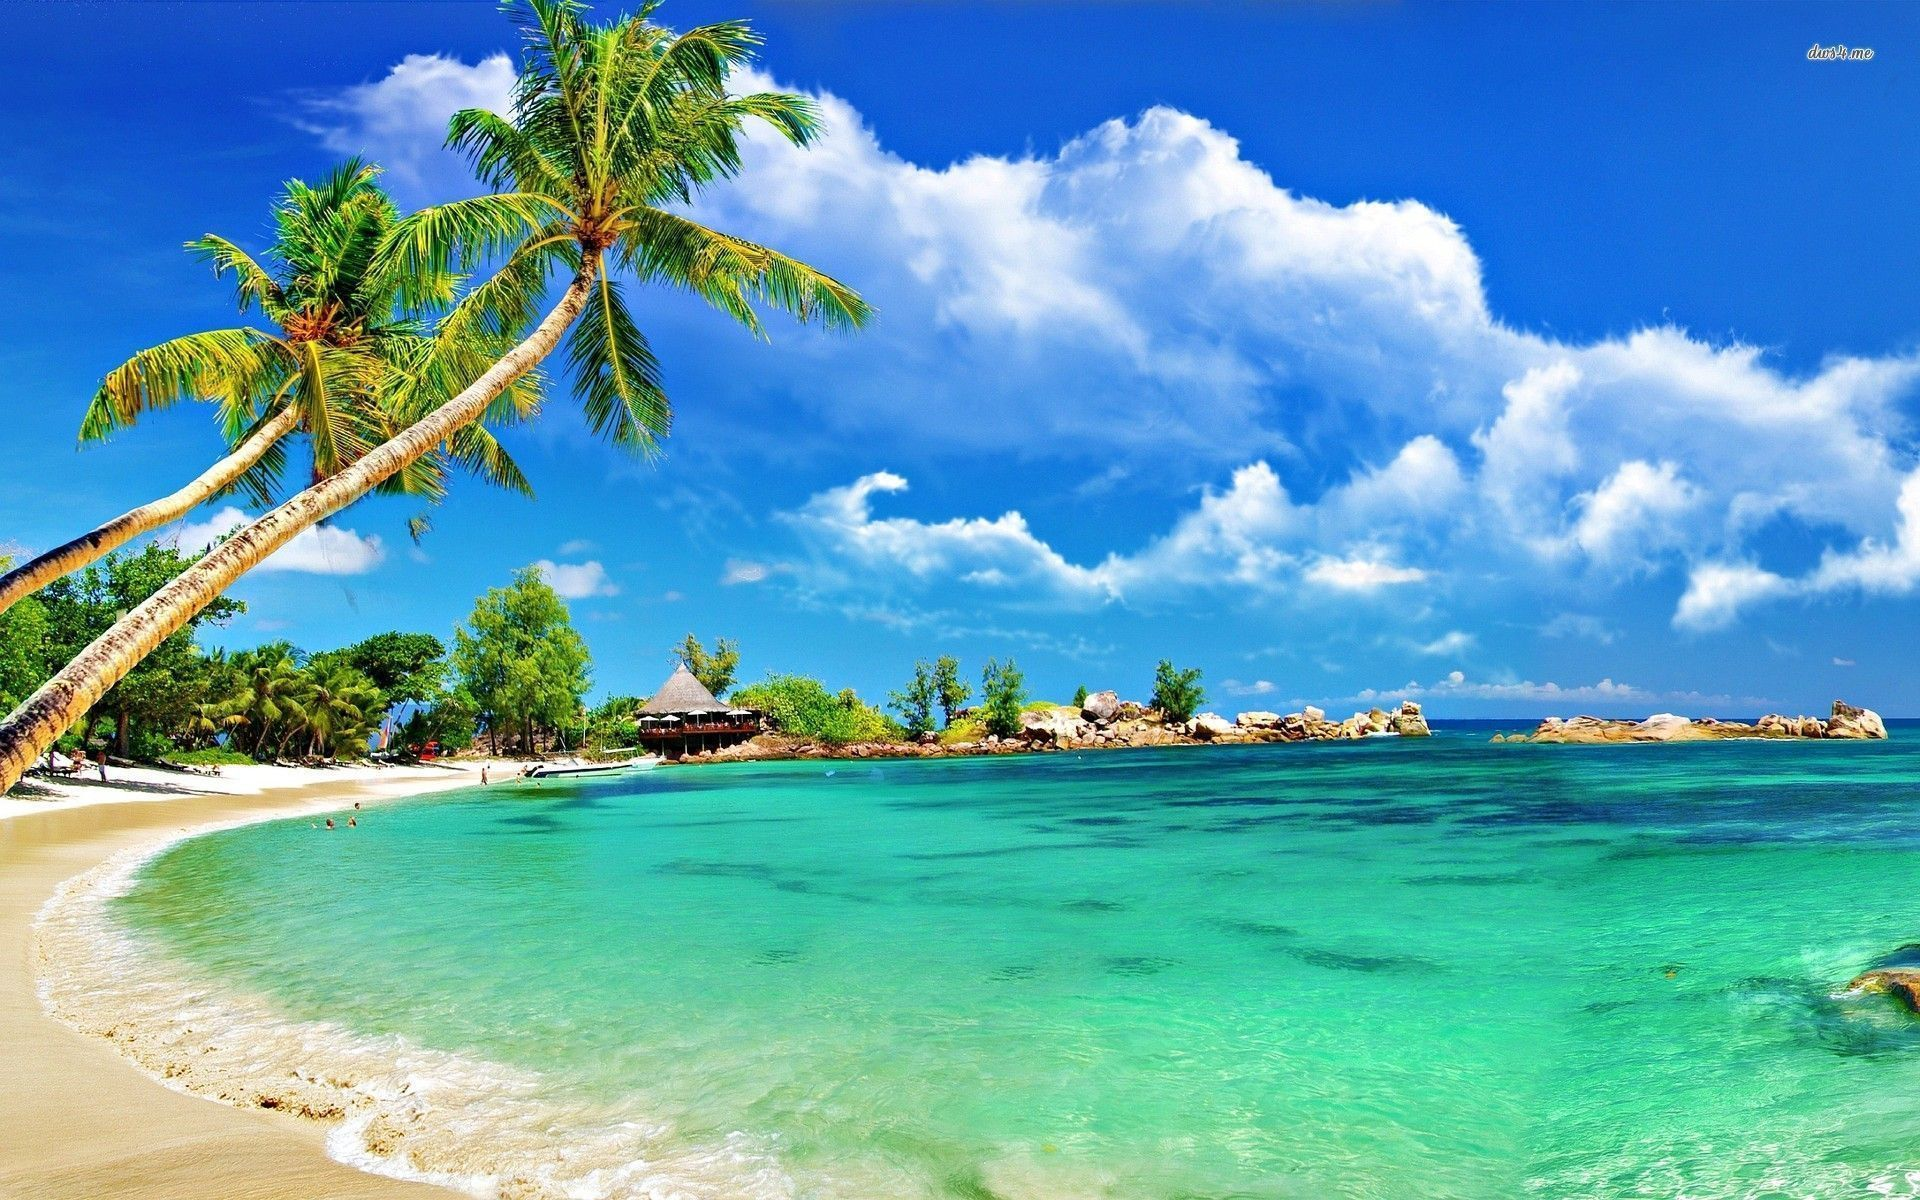 Get Sunny Beach Wallpapers Mobile As Wallpaper Hd For Free On Your Desktop Pc Android Or Iphone Find Beach Wallpaper Beach Background Tropical Island Beach